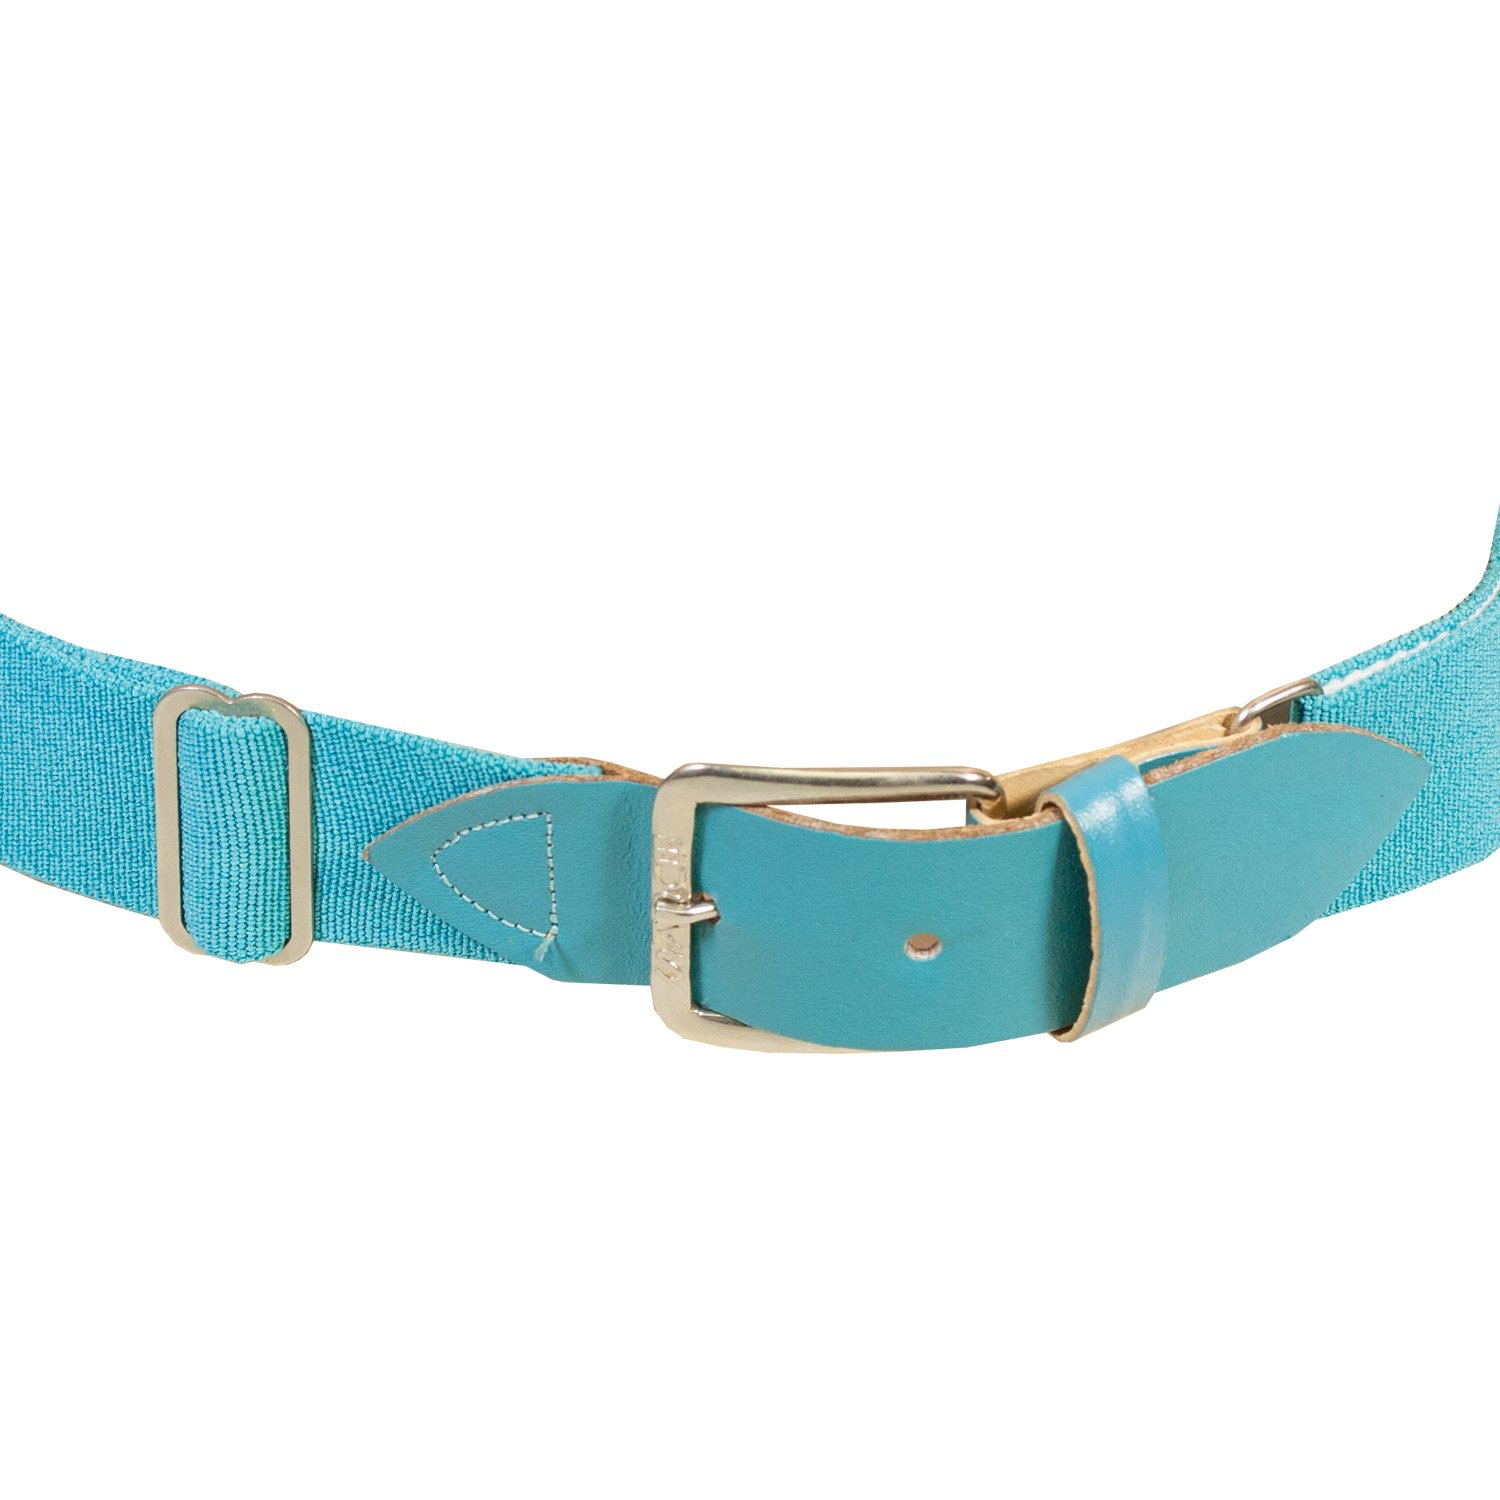 Adams Bucks 1.5 Adult Adjustable Elastic Baseball Belt Aqua